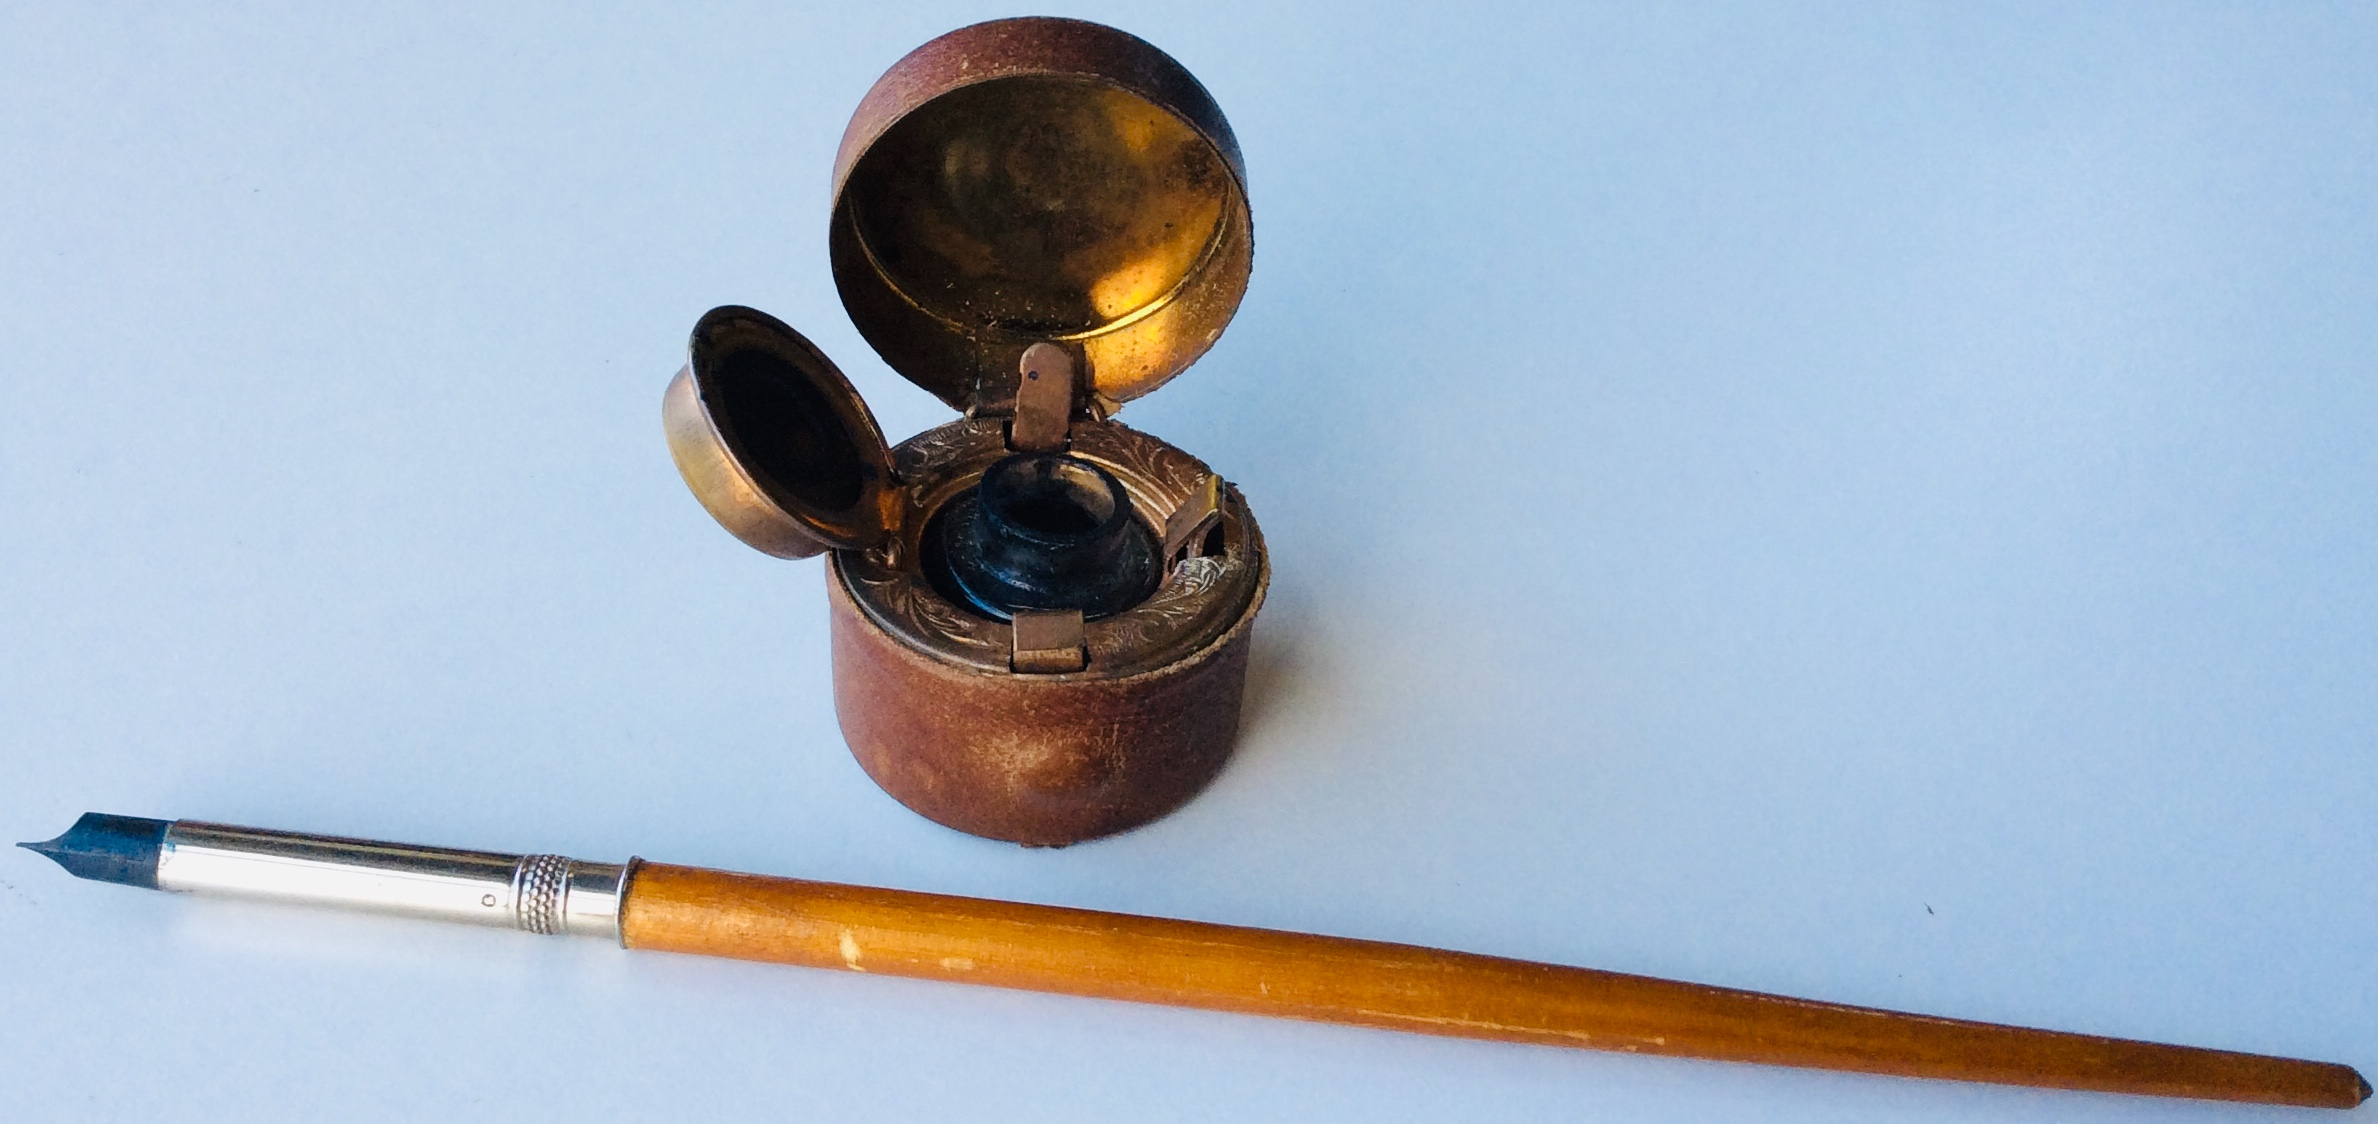 Antique inkwell with pen